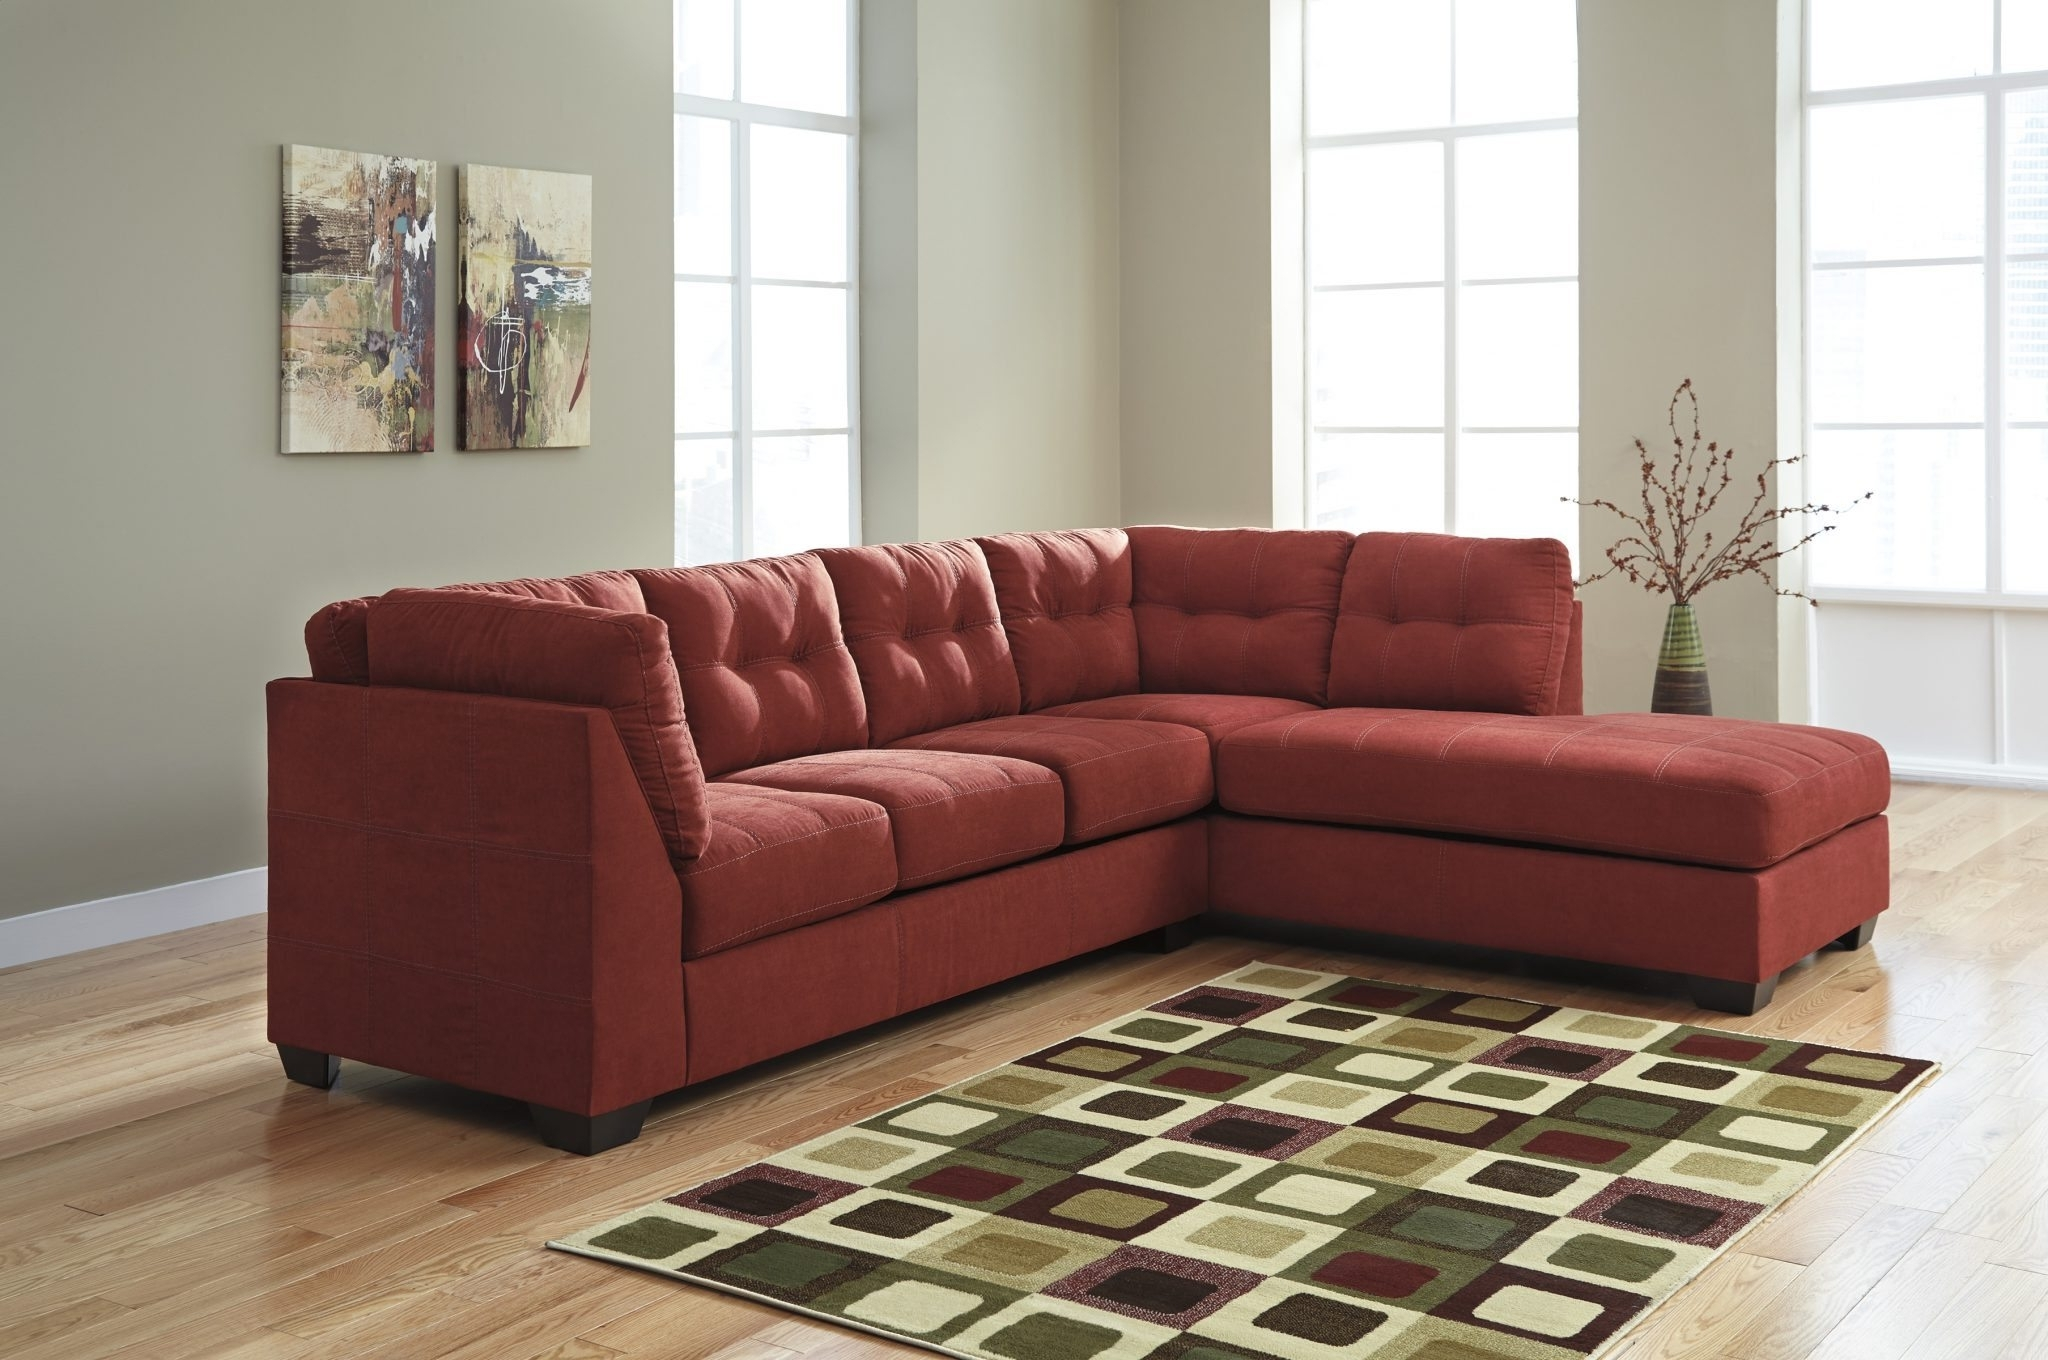 Fashionable Dufresne Sectional Sofas For Best Furniture Mentor Oh: Furniture Store – Ashley Furniture (View 17 of 20)